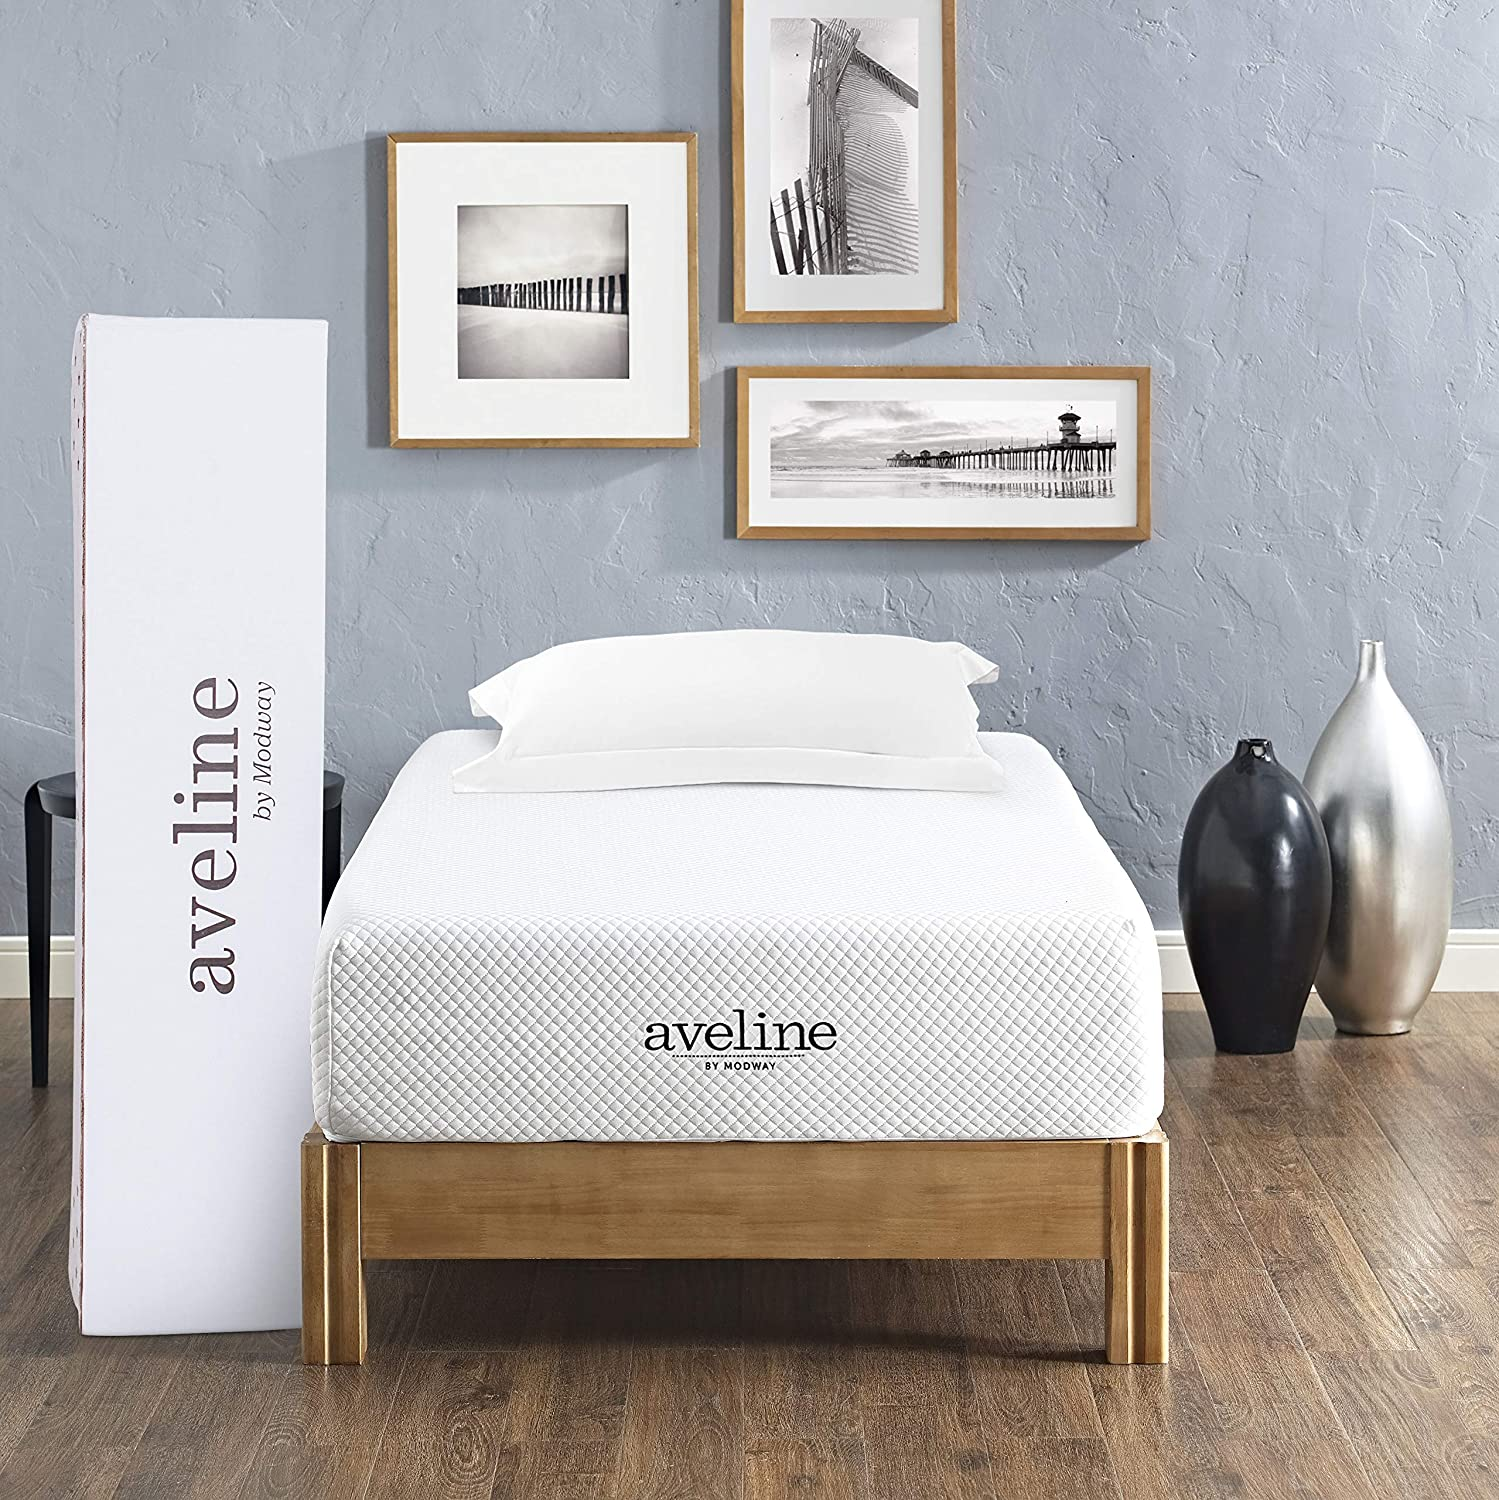 "Modway Aveline 10"" Gel Infused Memory Foam Twin Mattress With CertiPUR-US Certified Foam - 10-Year Warranty - Available In Multiple Sizes"